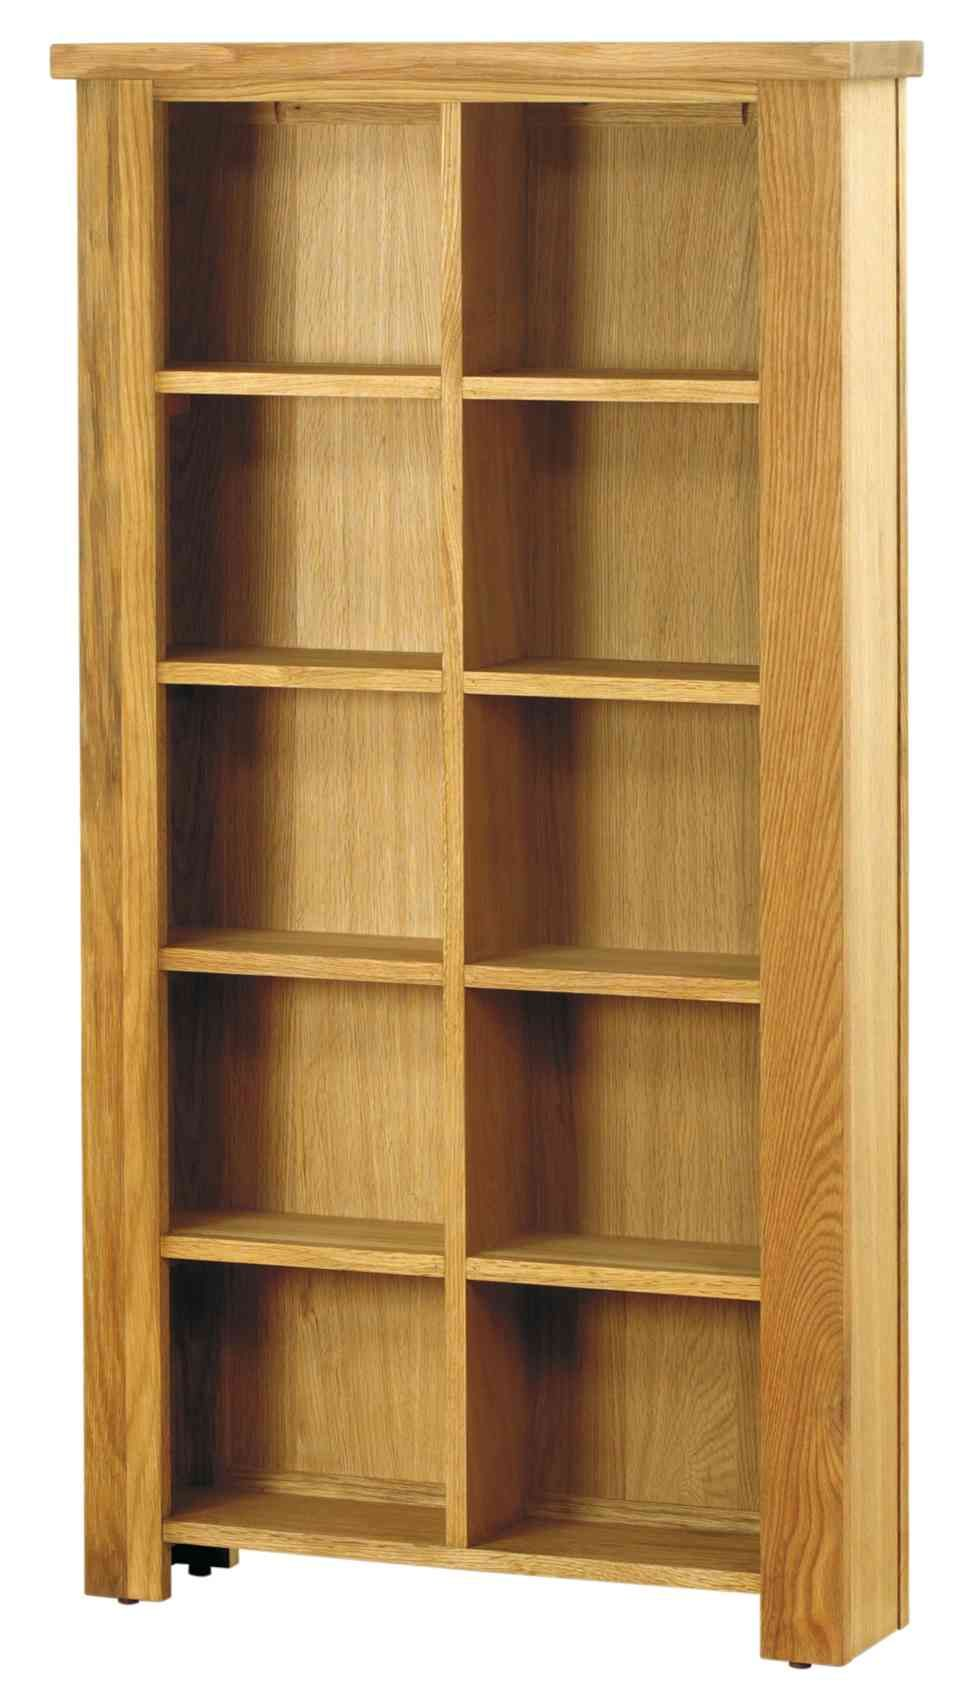 Music Cd Storage Solutions This Solid Oak Storage Unit Provides A Practical Dvdcd Storage